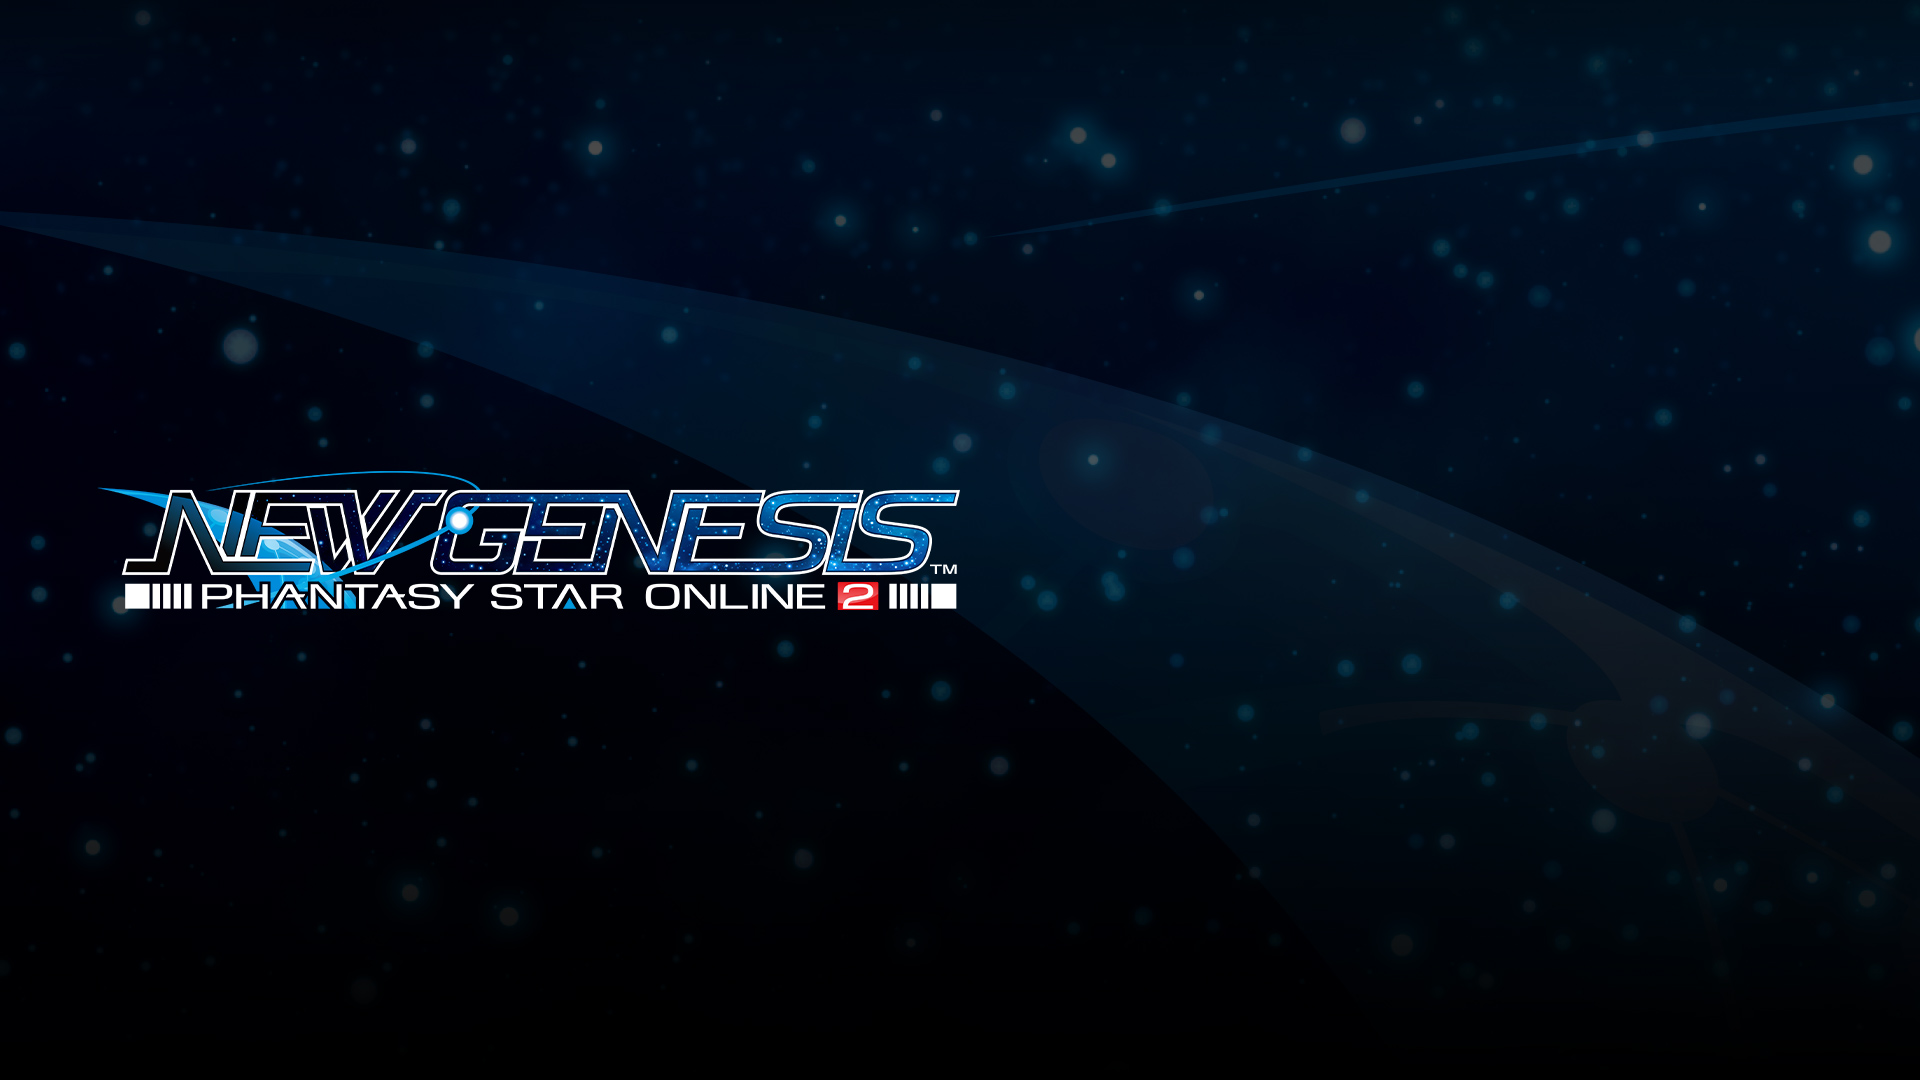 Phantasy Star Online 2 New Genesis logo on top of a starry background